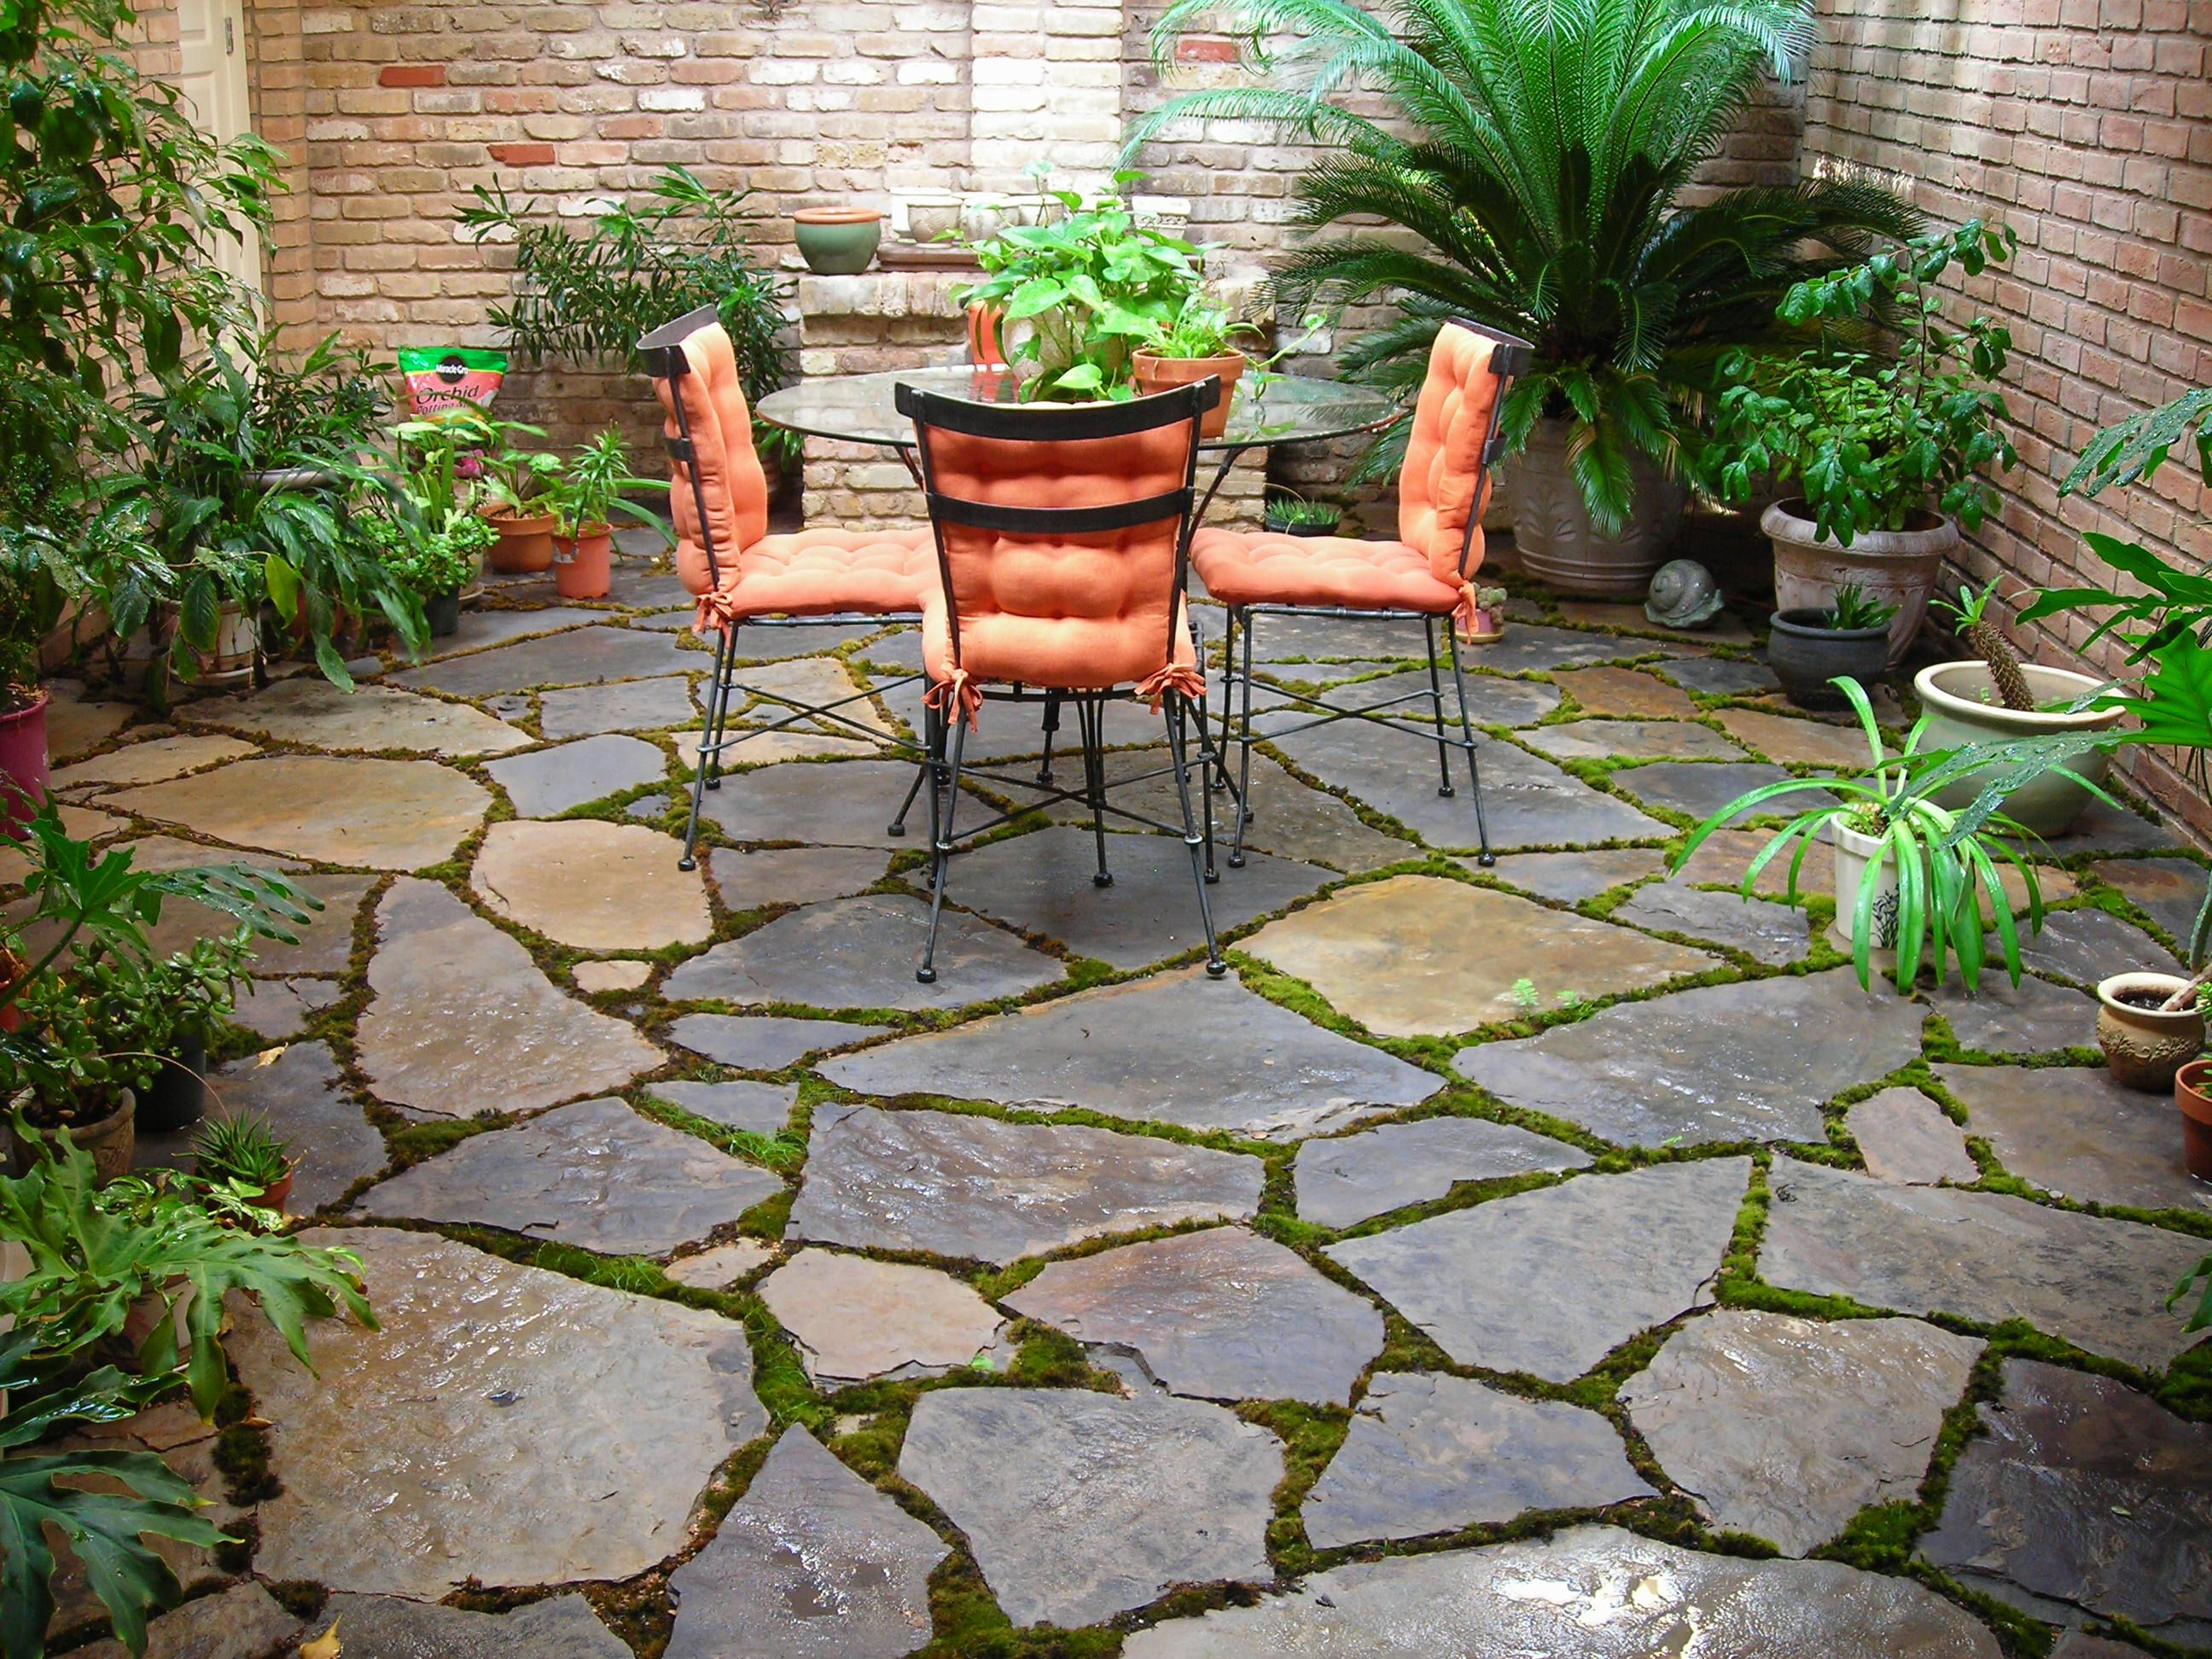 lovely moss patio - I wonder if I could break up my nasty old back patio and make it look like this?